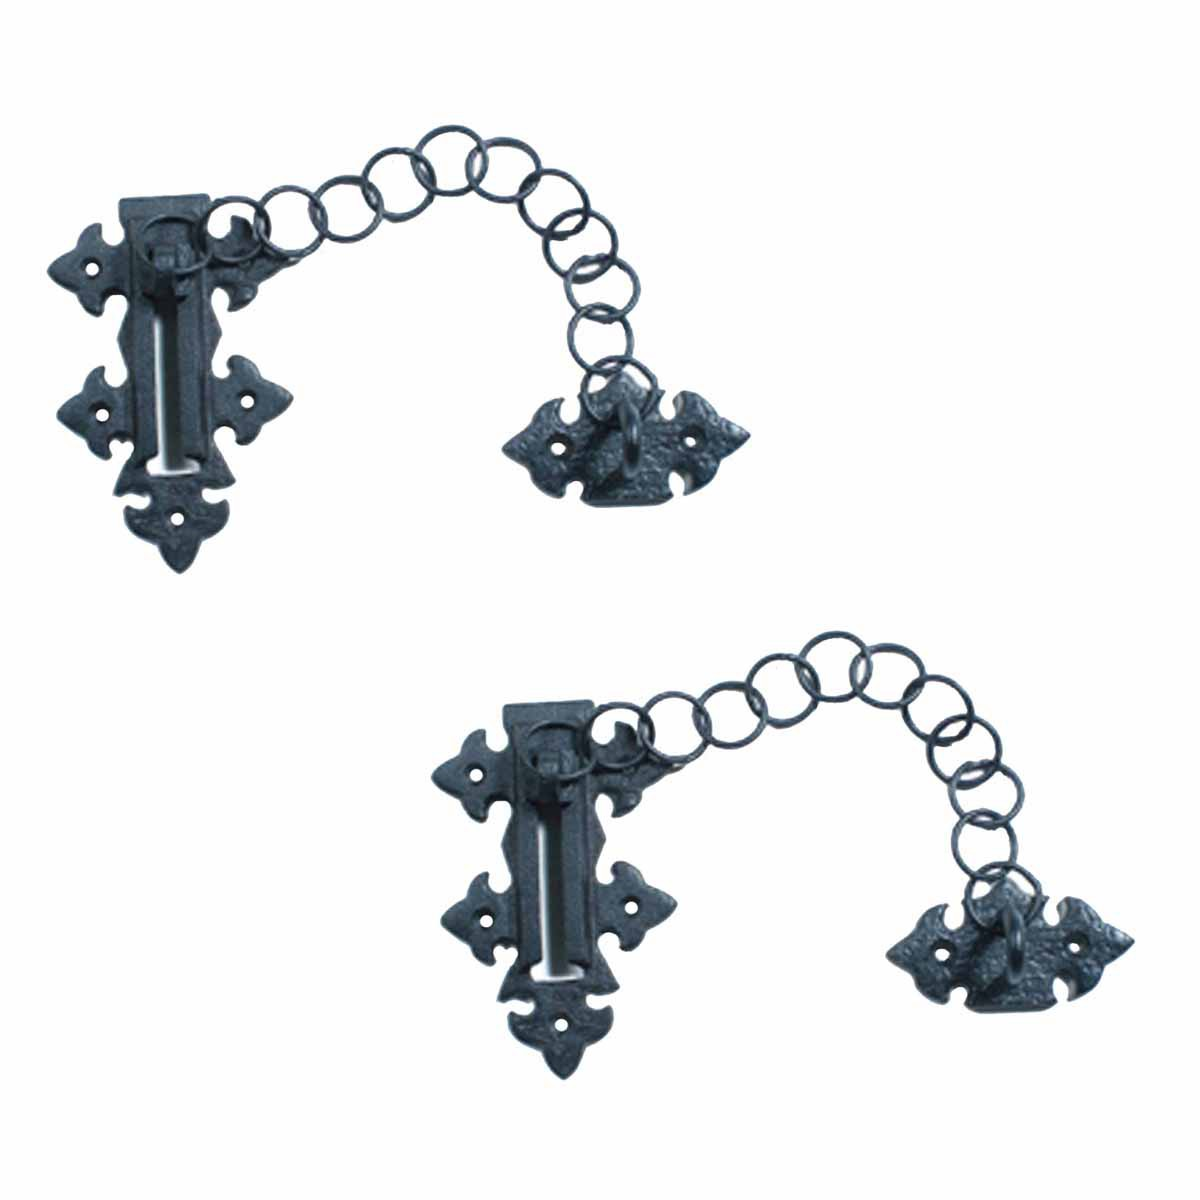 Chain door locks black wrought iron rustproof set of